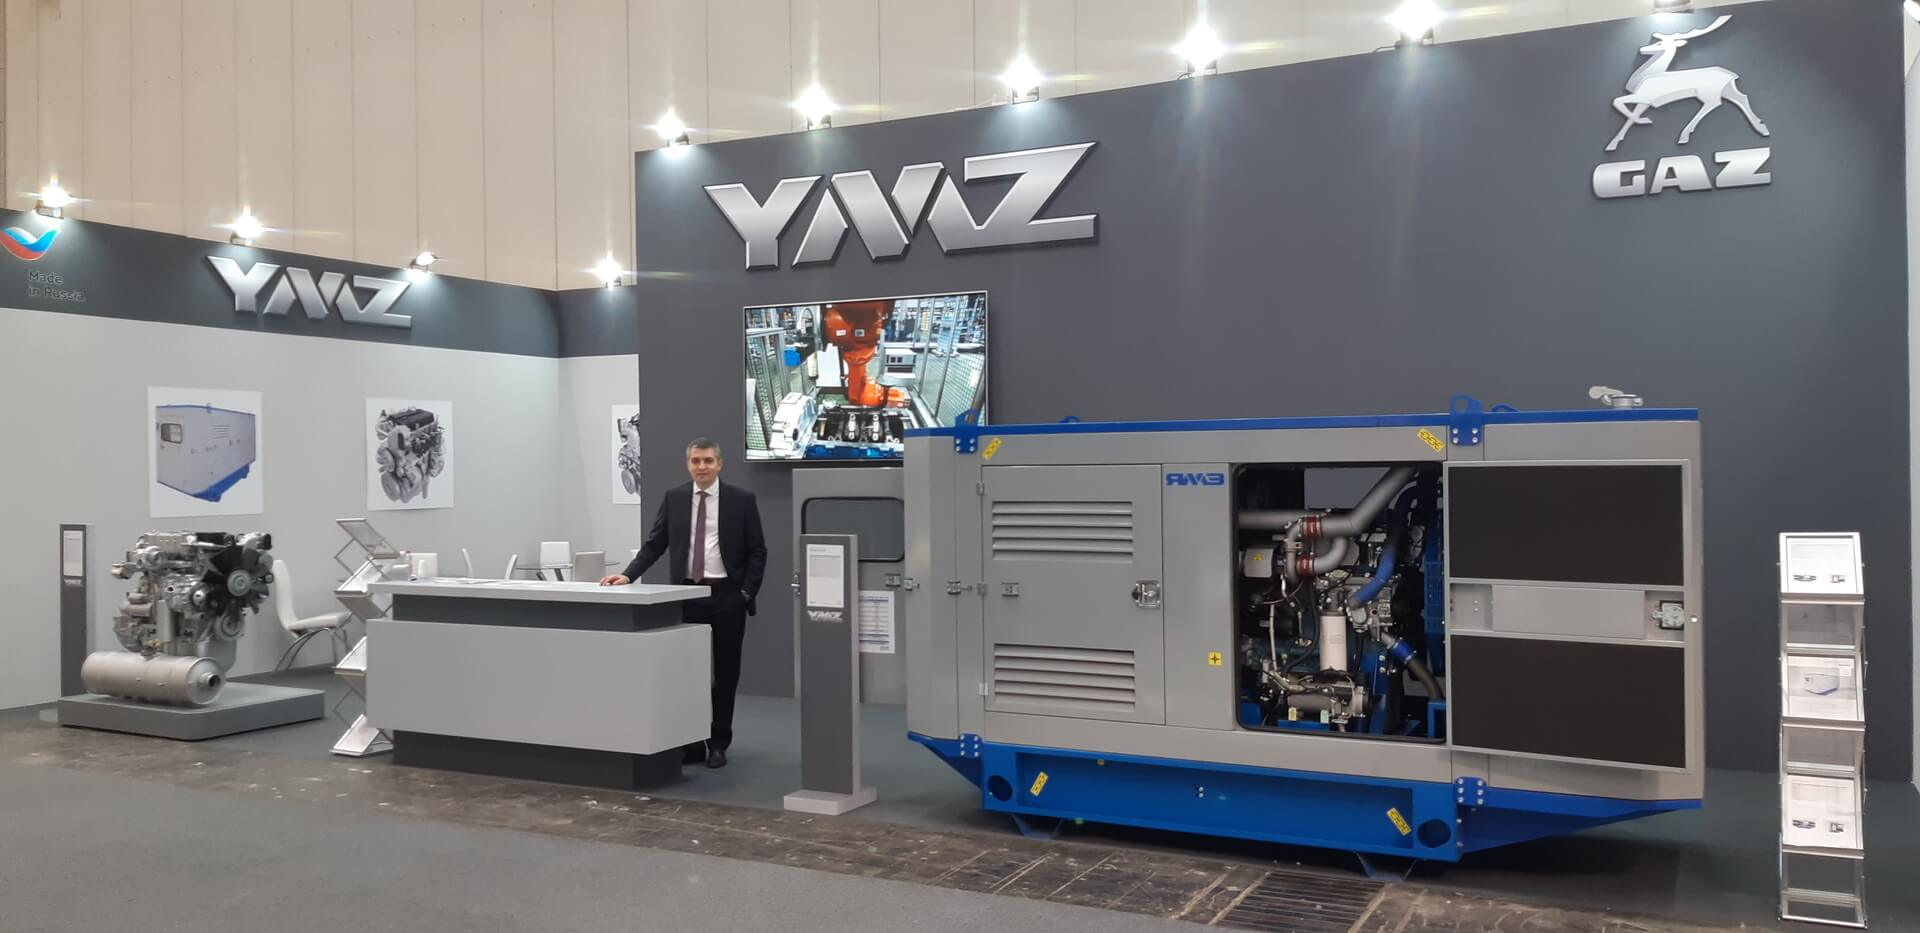 Yaroslavl Motor Plant showcases its powertrains for farming and agriculture at AGRITECHNICA 2019 in Germany